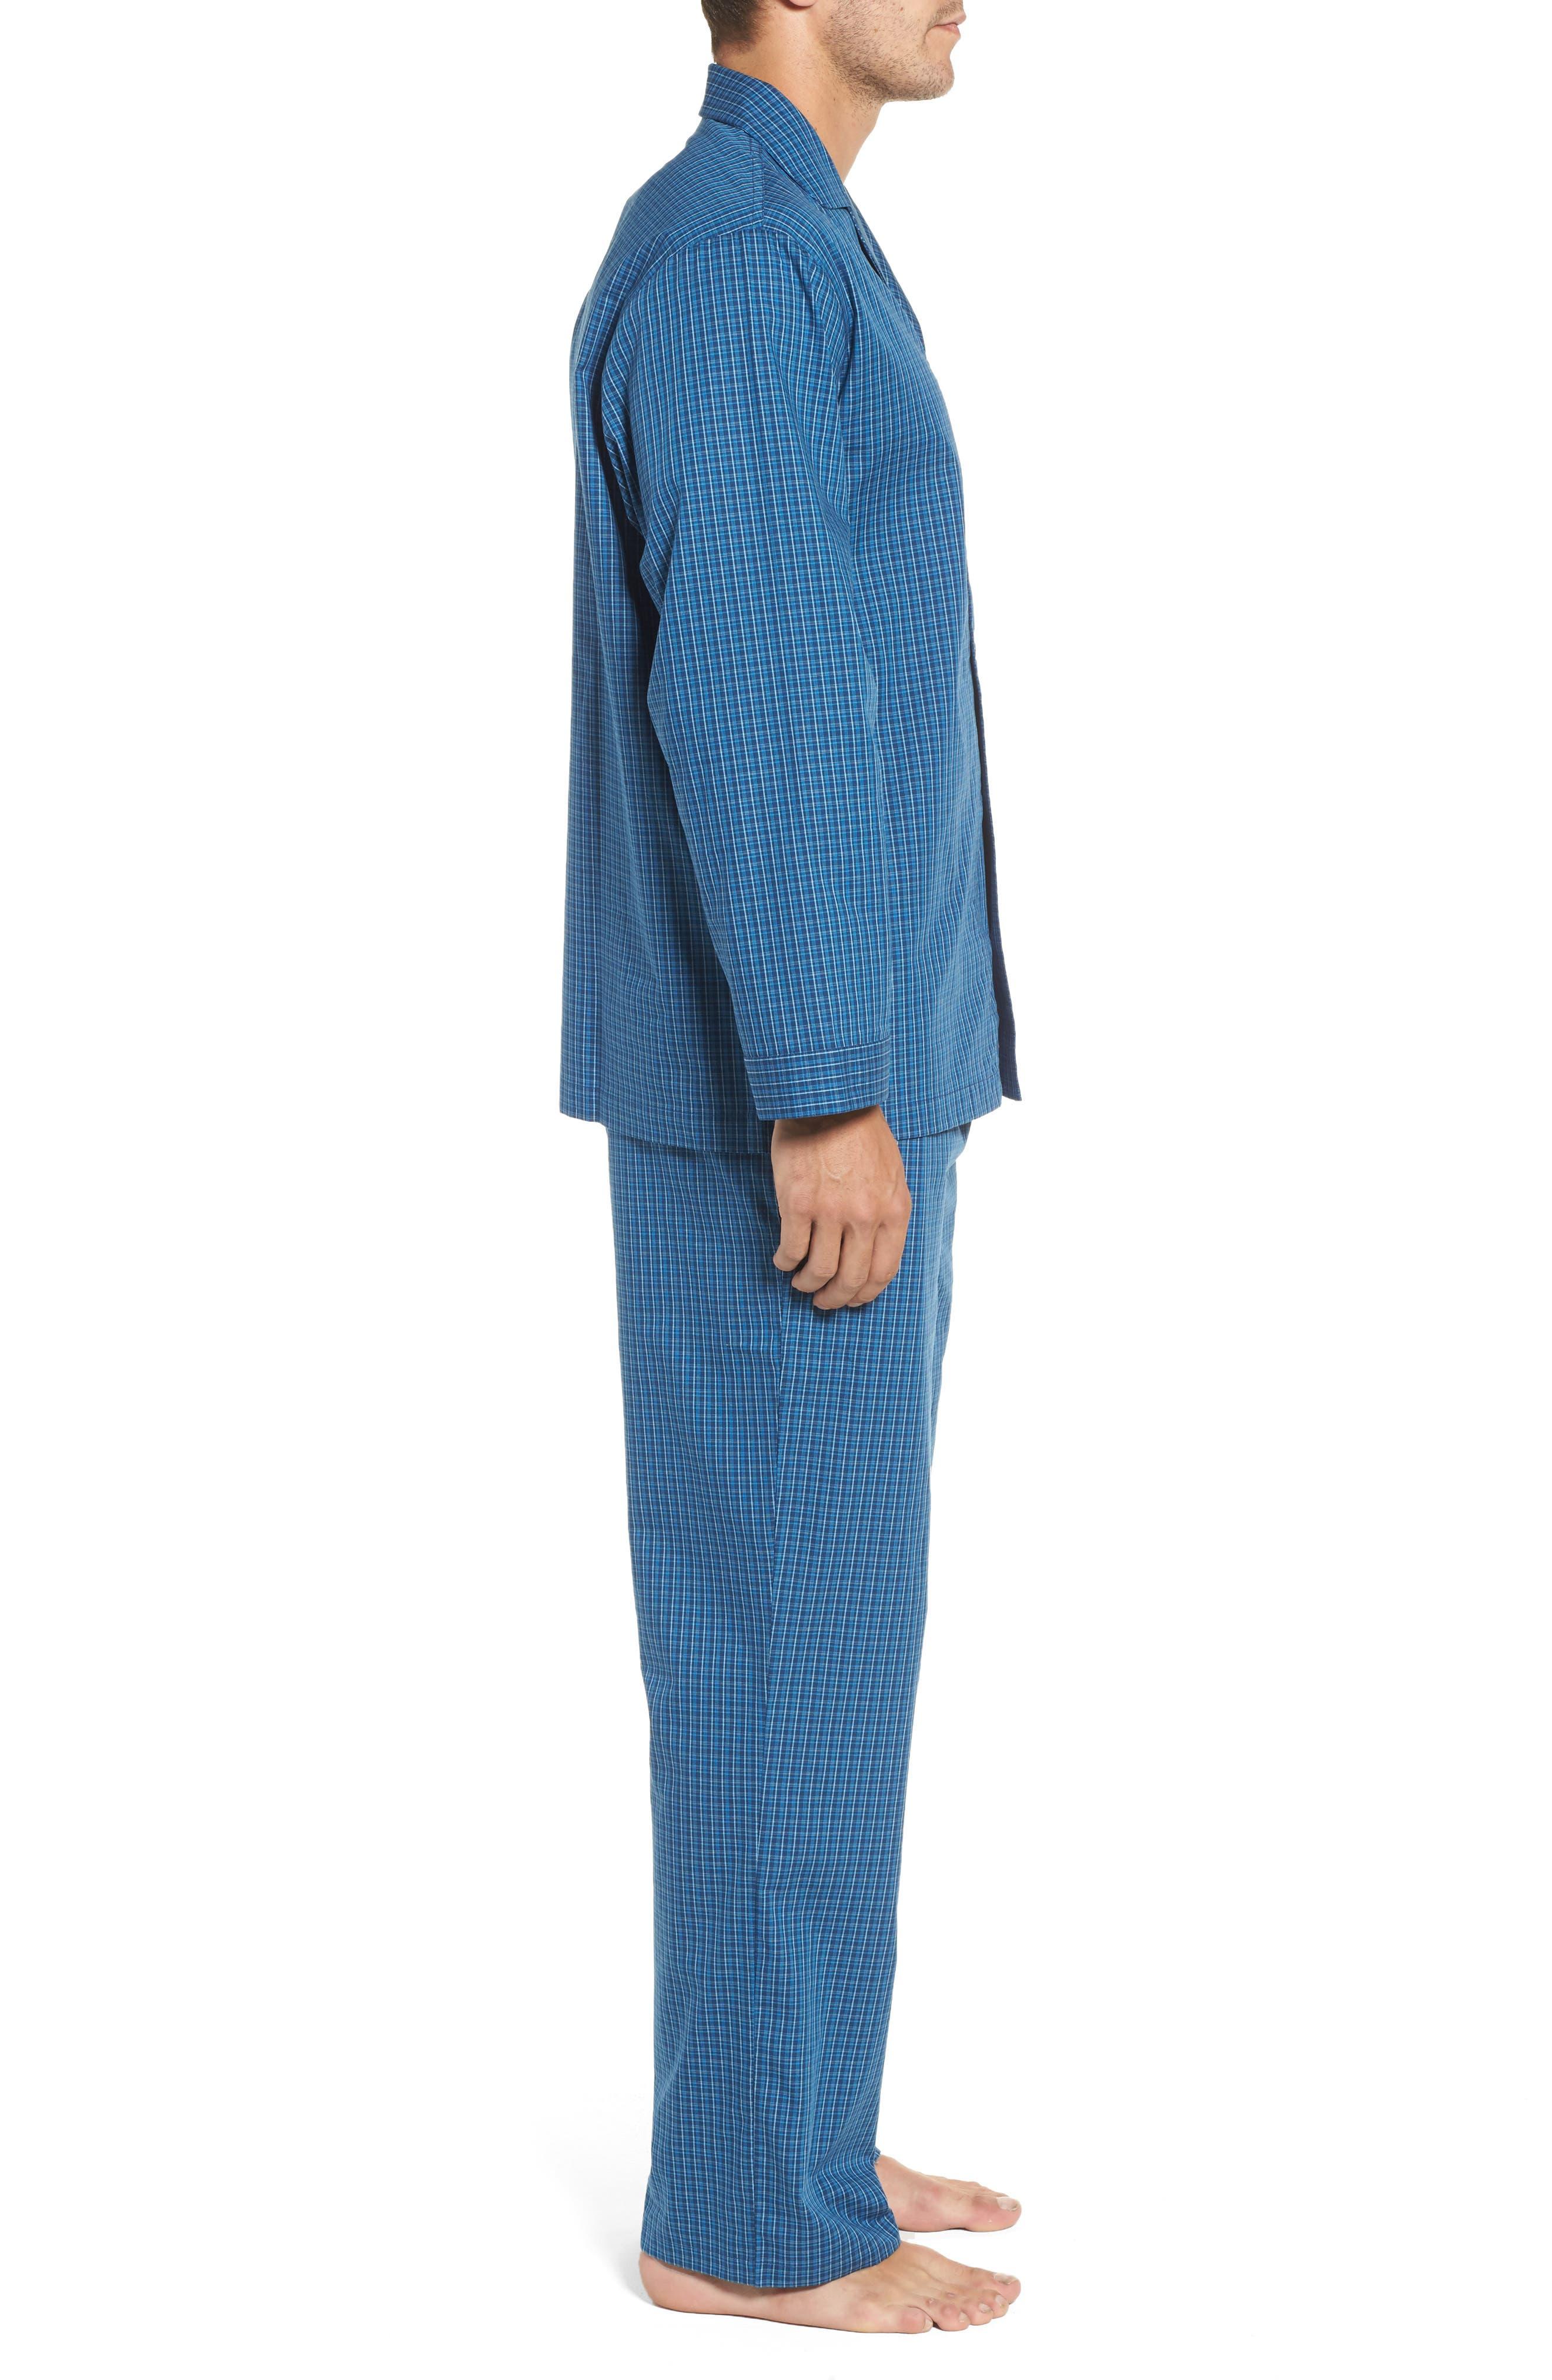 Poplin Pajama Set,                             Alternate thumbnail 3, color,                             Navy Medieval- Blue Plaid